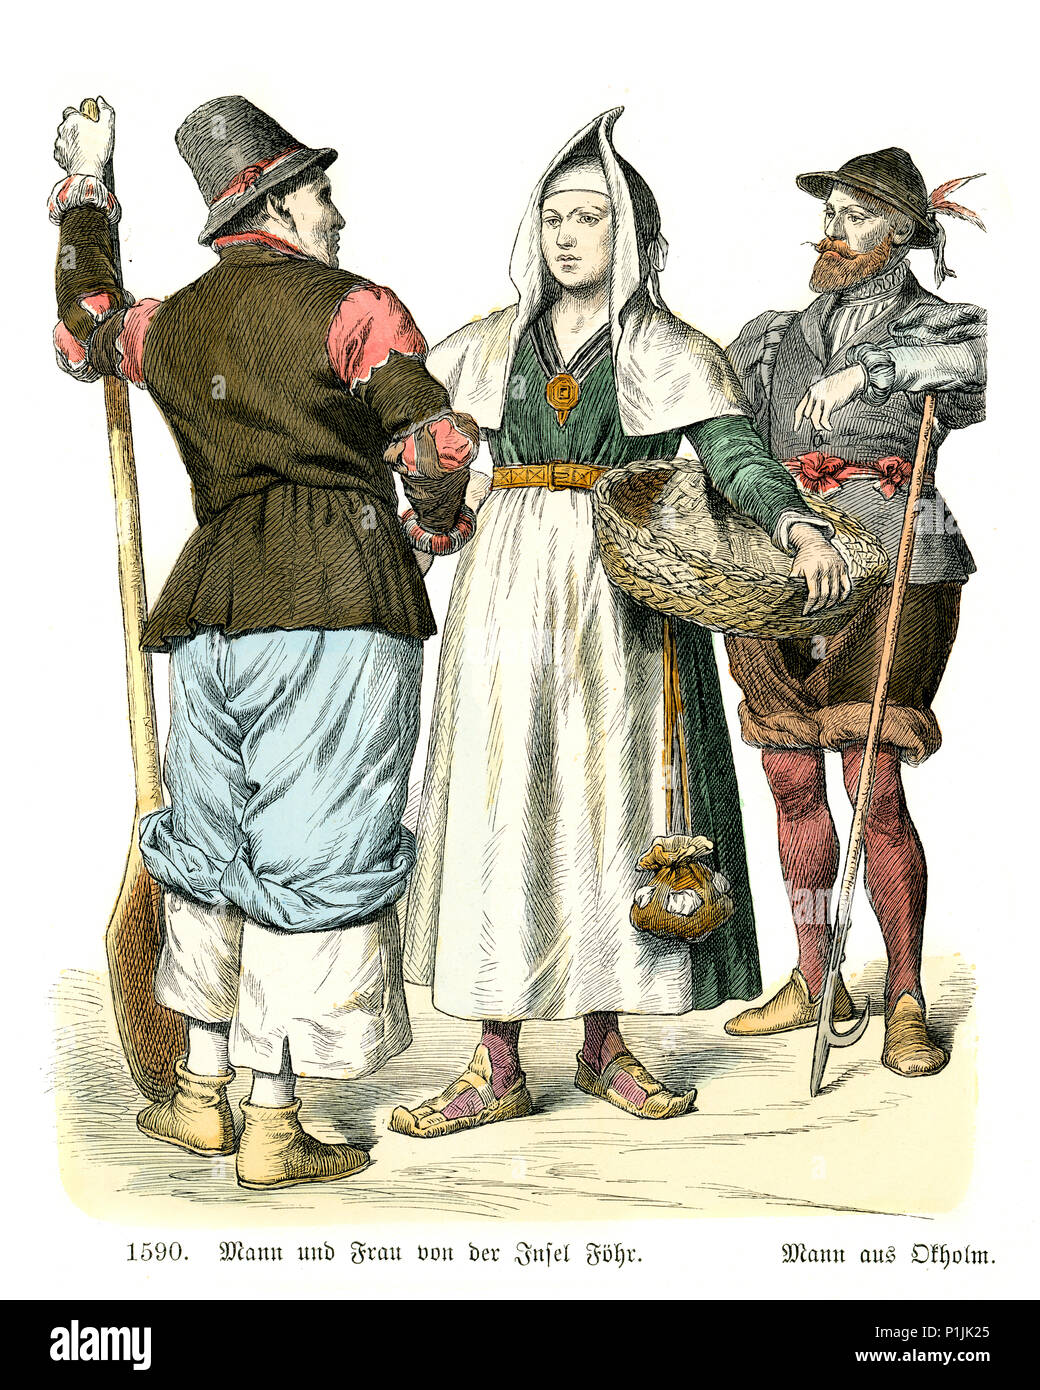 Vintage engraving of History of Fashion, Costumes of Germany 16th Century. Man and woman of Fohr one of the North Frisian Islands on the German coast  - Stock Image